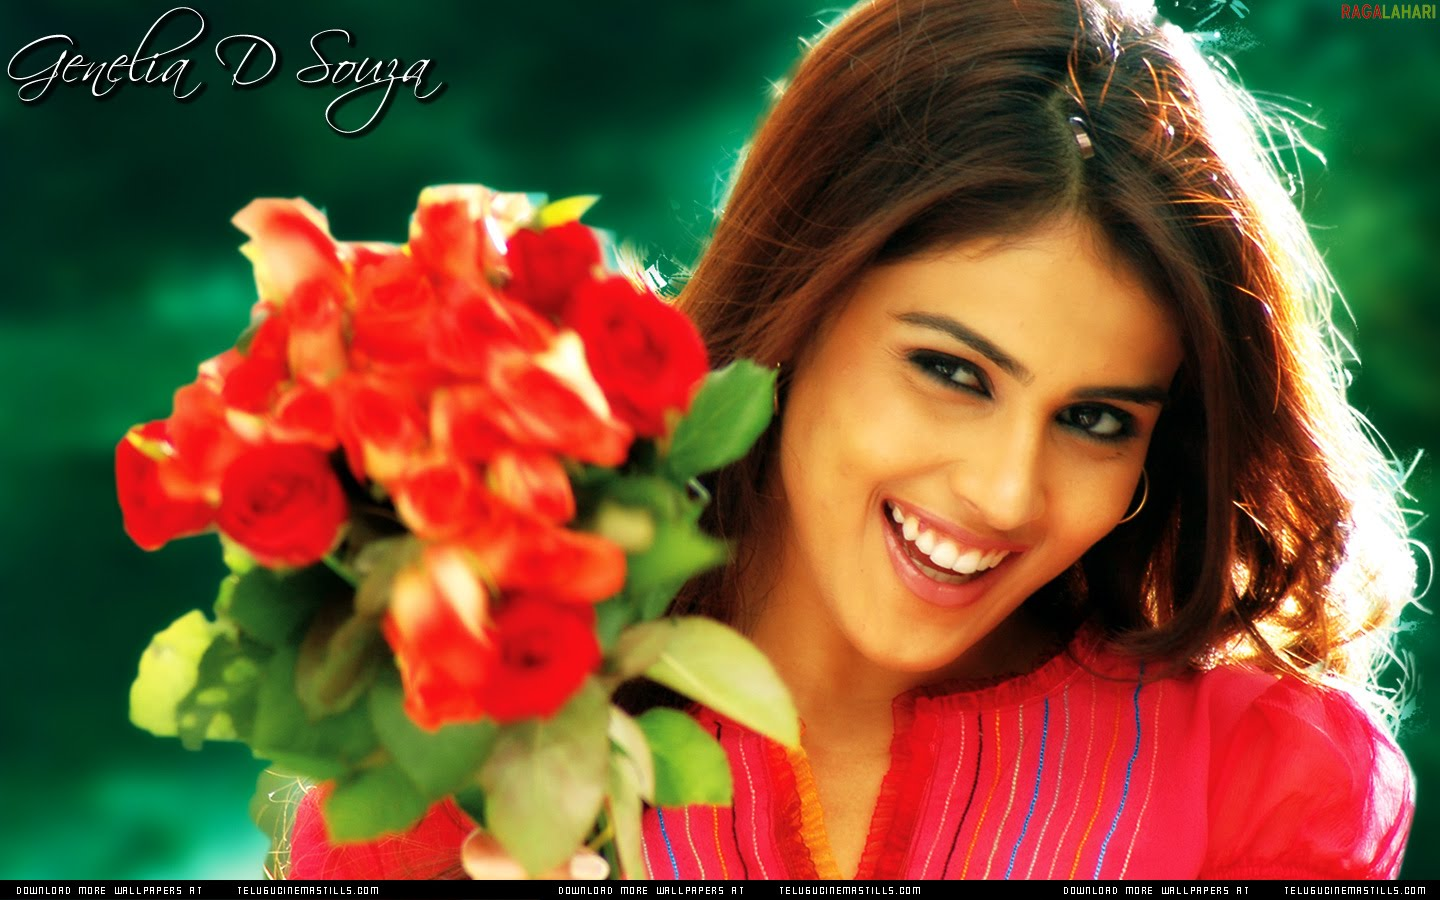 Genelia D;souza Hd wallpaper for download in Laptop and desktop